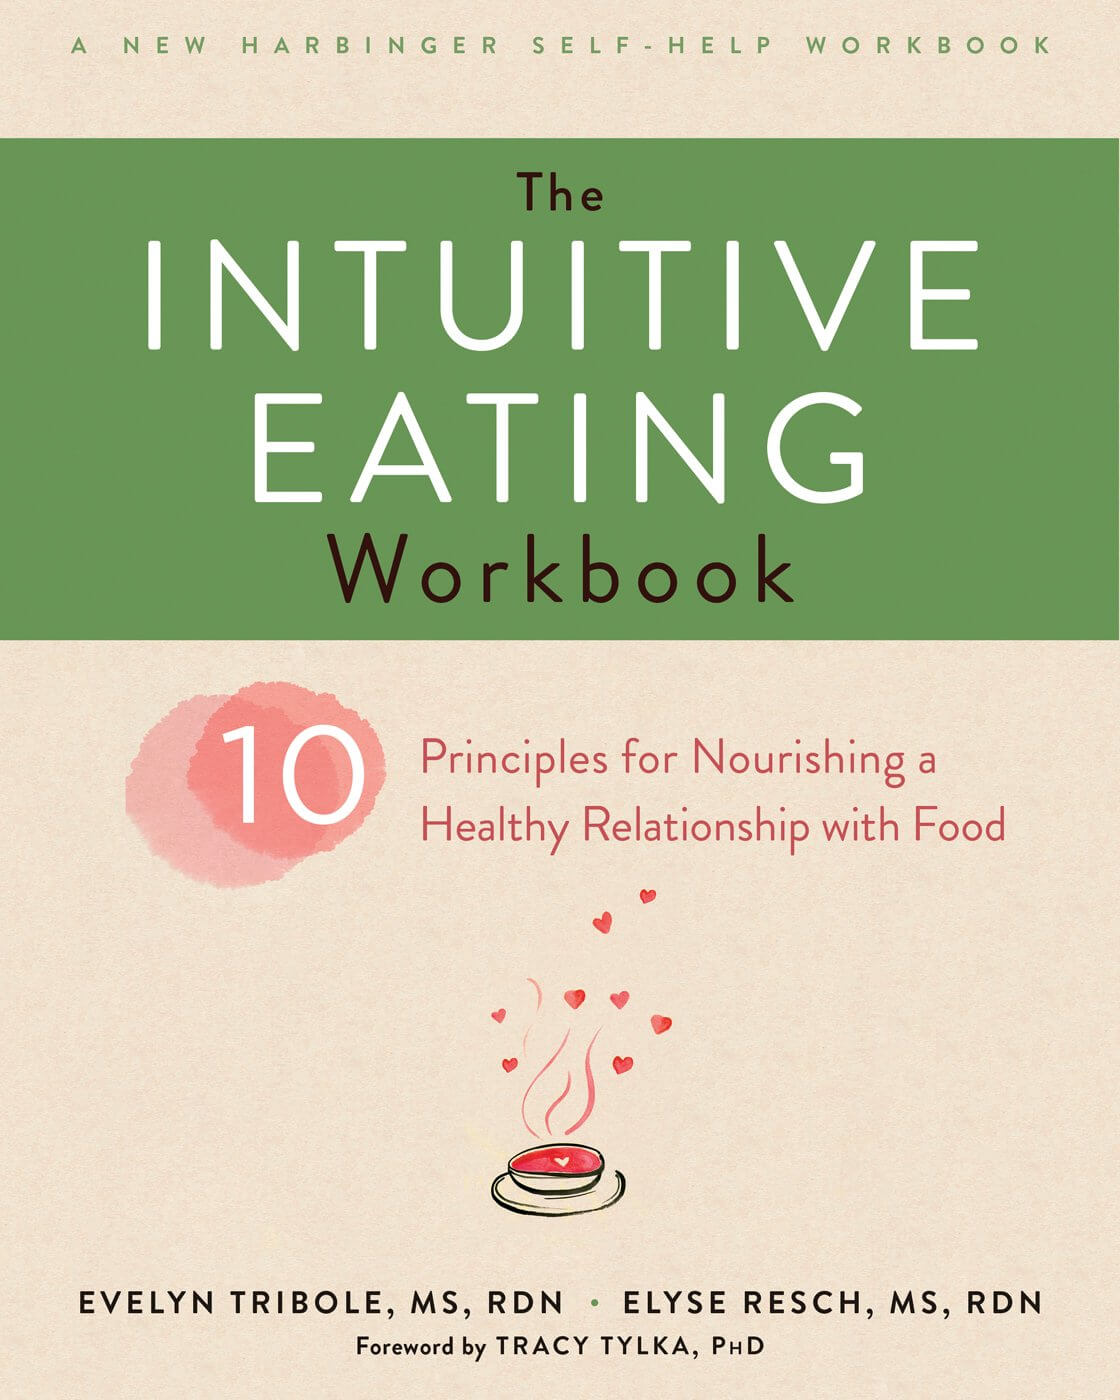 Intuitive eating workbook on how to stop binge eating